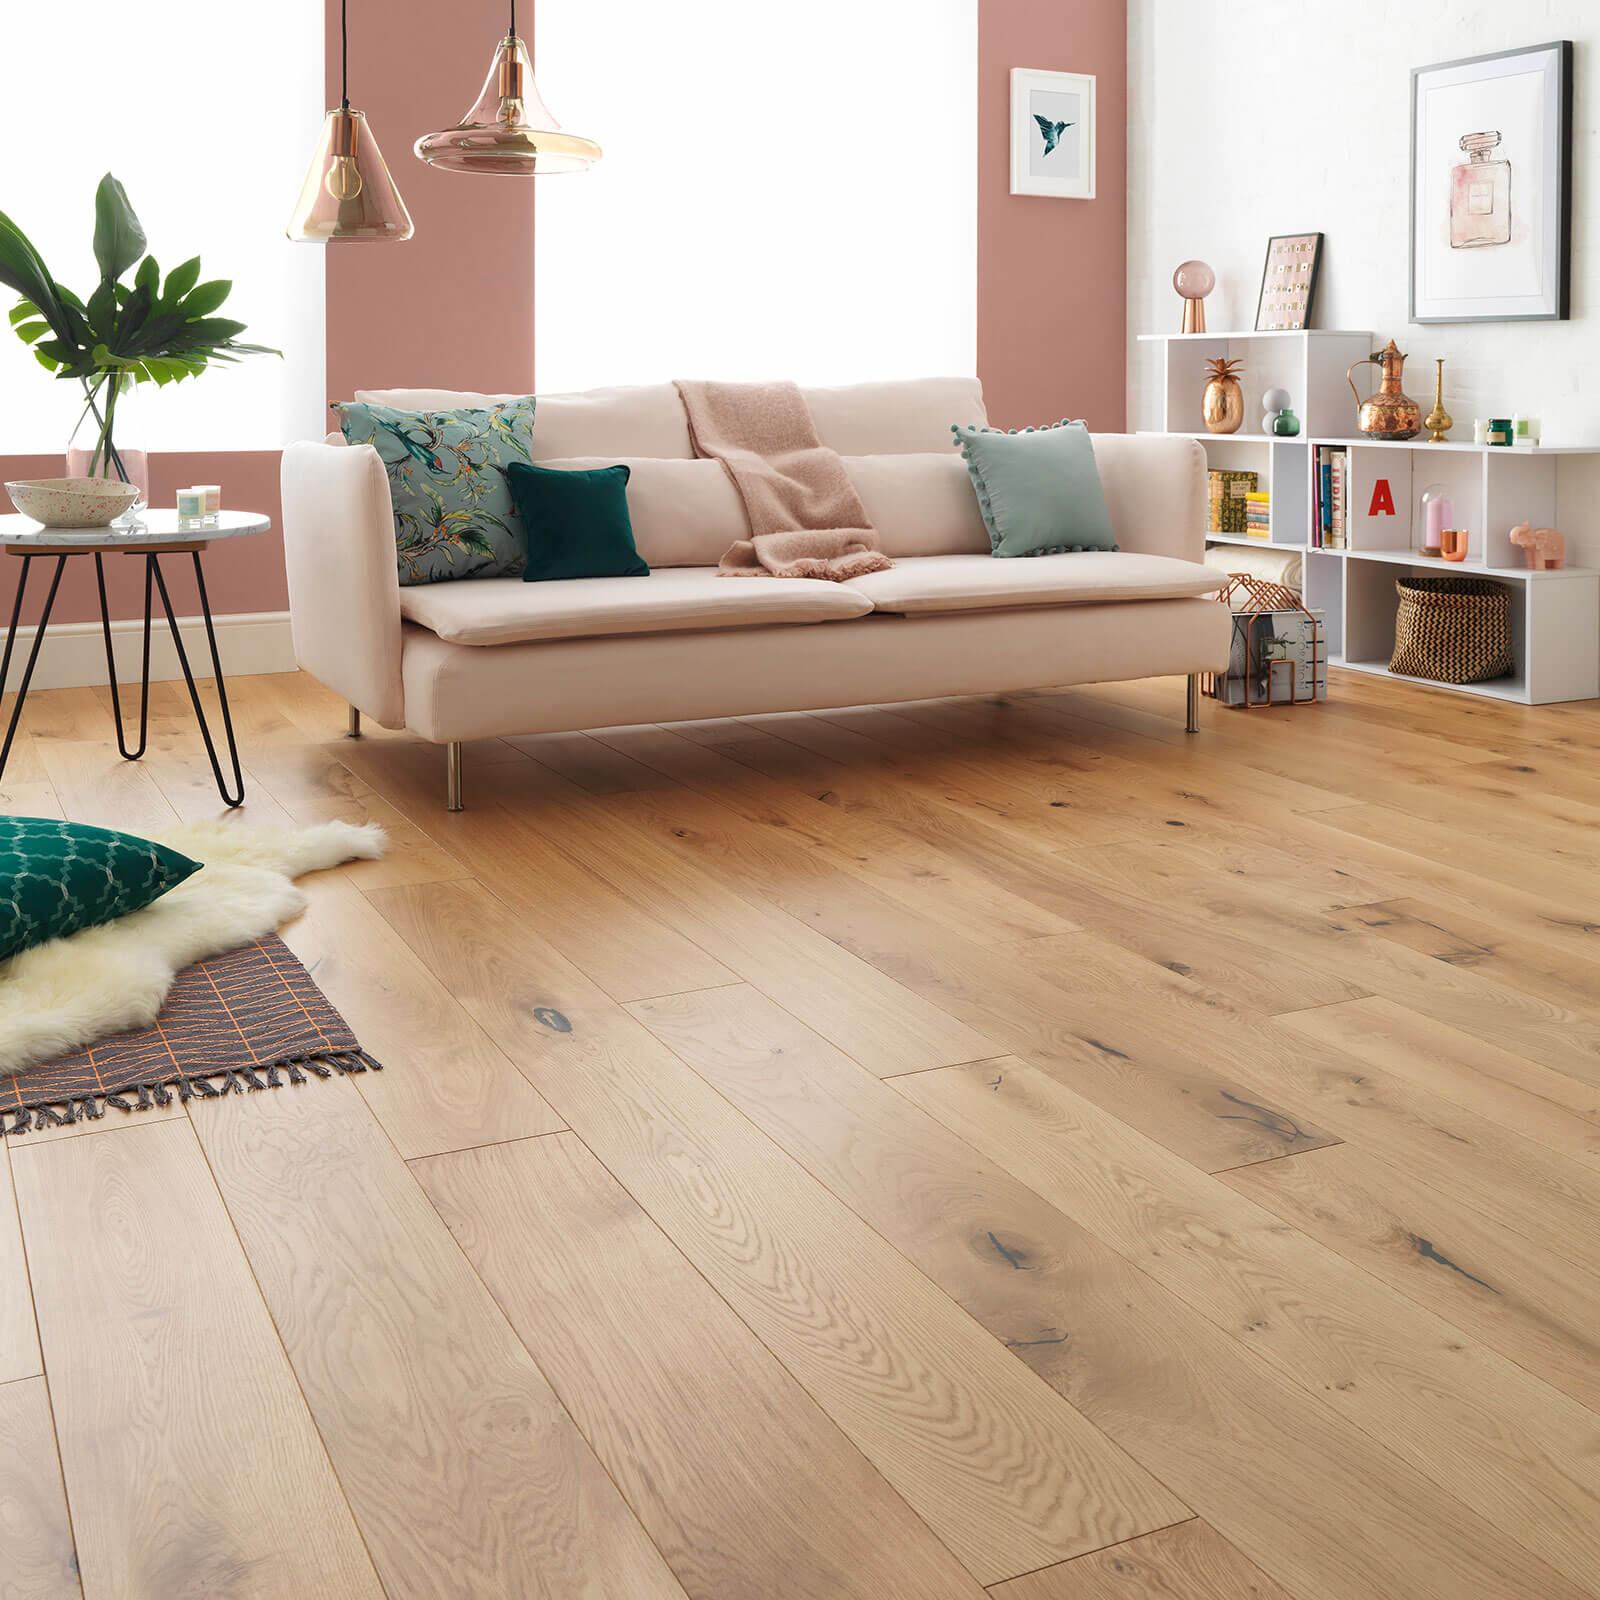 Woodpecker Harlech Rustic Oak Lacquered Engineered Wood Flooring 240mm 35-HRO-240